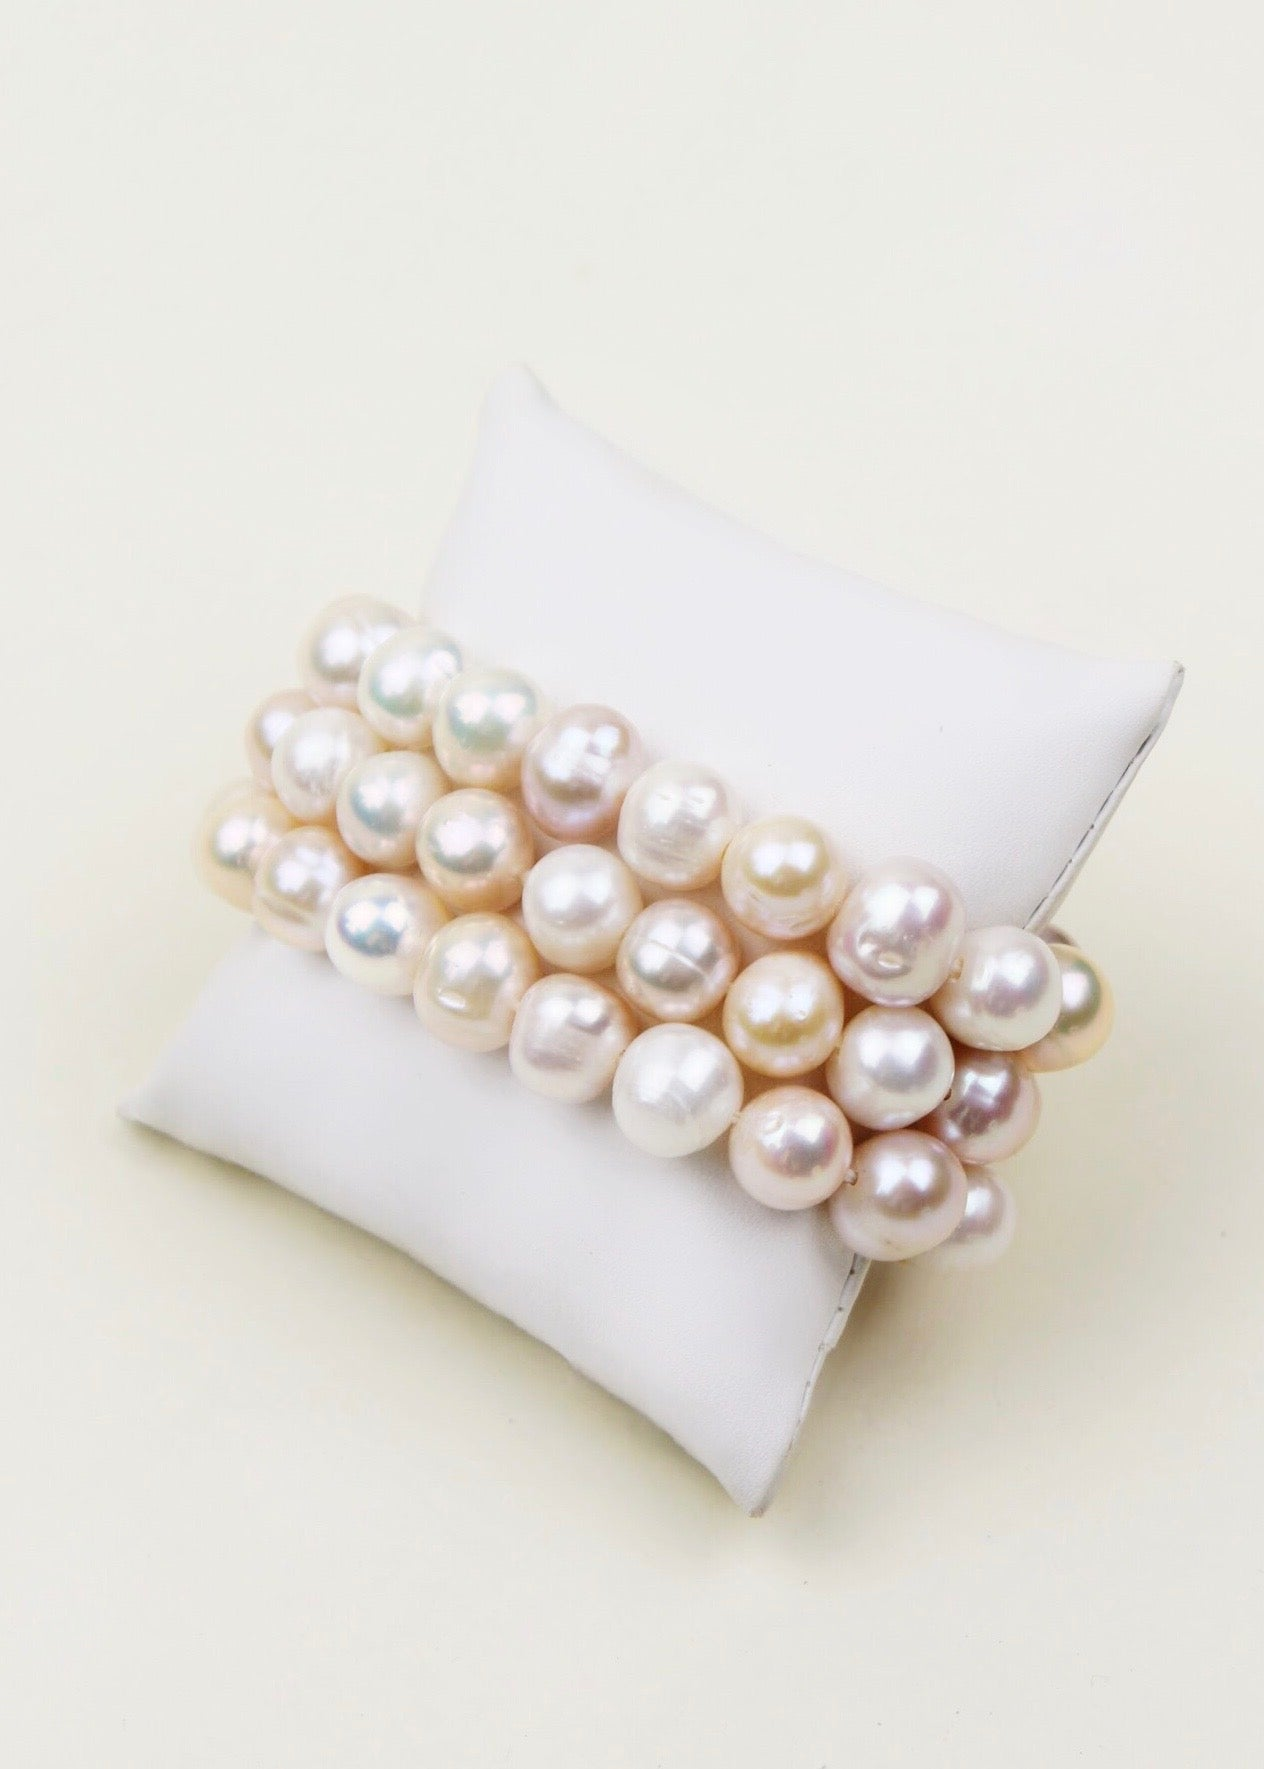 Natural Freshwater Pearl Bracelet 11mm